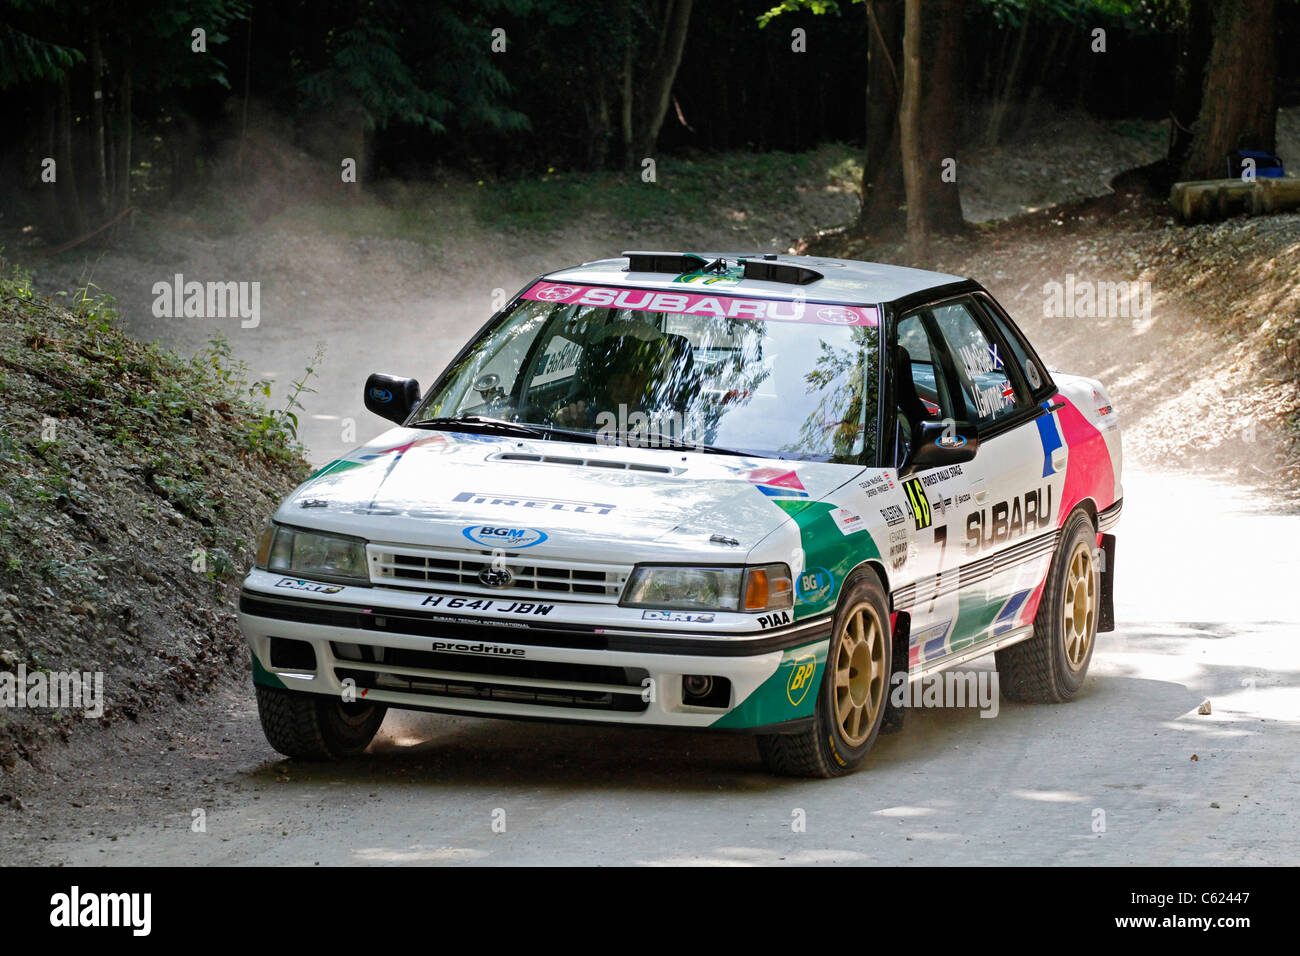 1991 Subaru Legacy Rs Wrc Rally Car At The 2011 Goodwood Festival Of